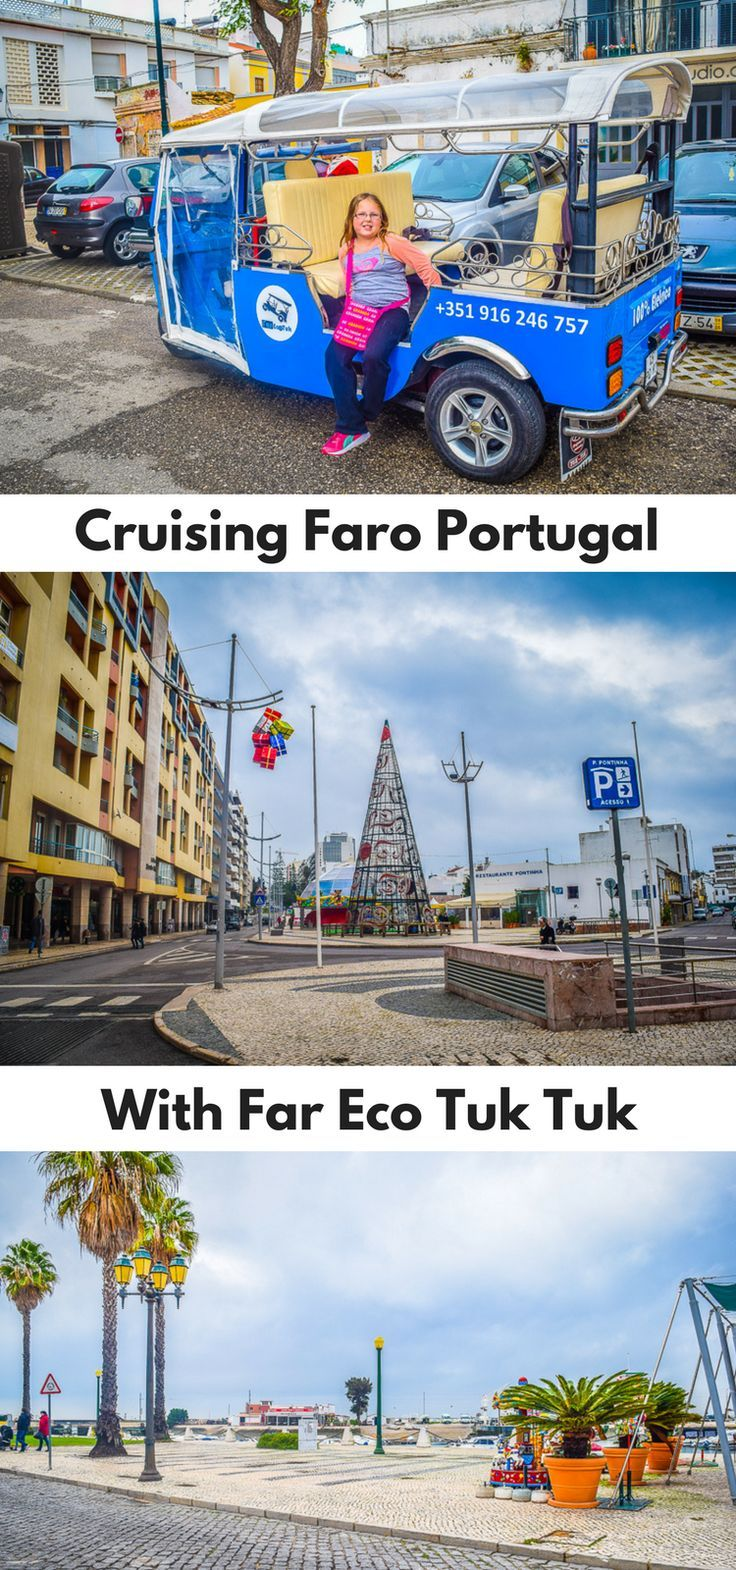 When checking out things to do in #Faro on the Algarve, we came across Far Eco Tuk Tuk. We immediately knew this was something the kids would love. 2 hours in a tuk-tuk, what kids would not love this?